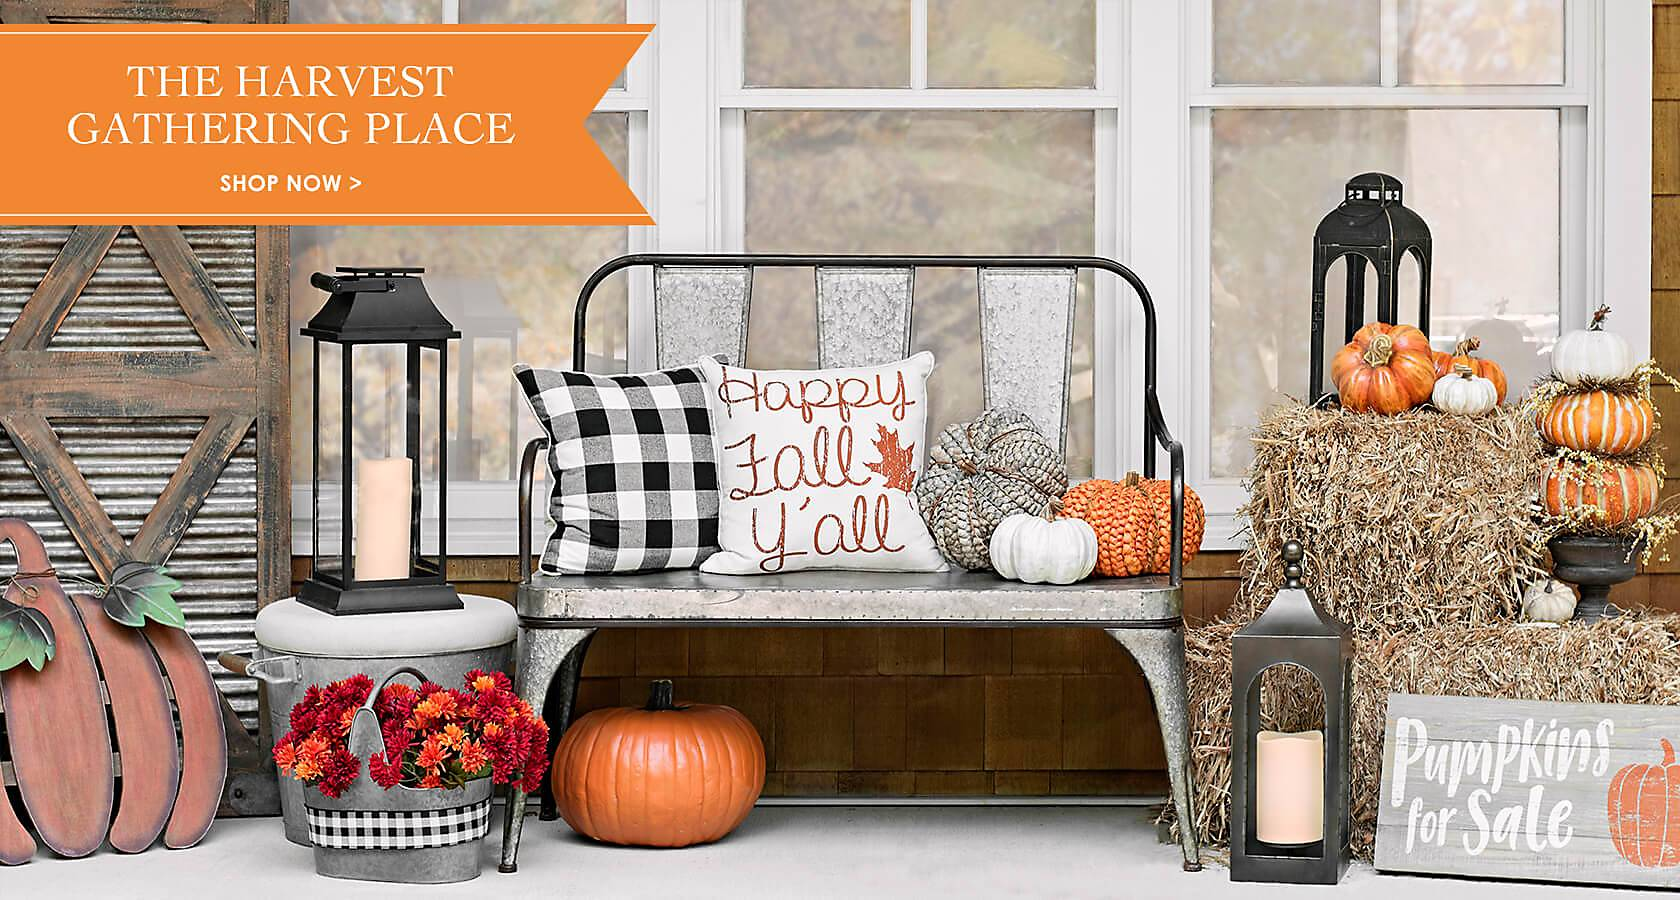 Introducing The Harvest Gathering Place - Shop Now